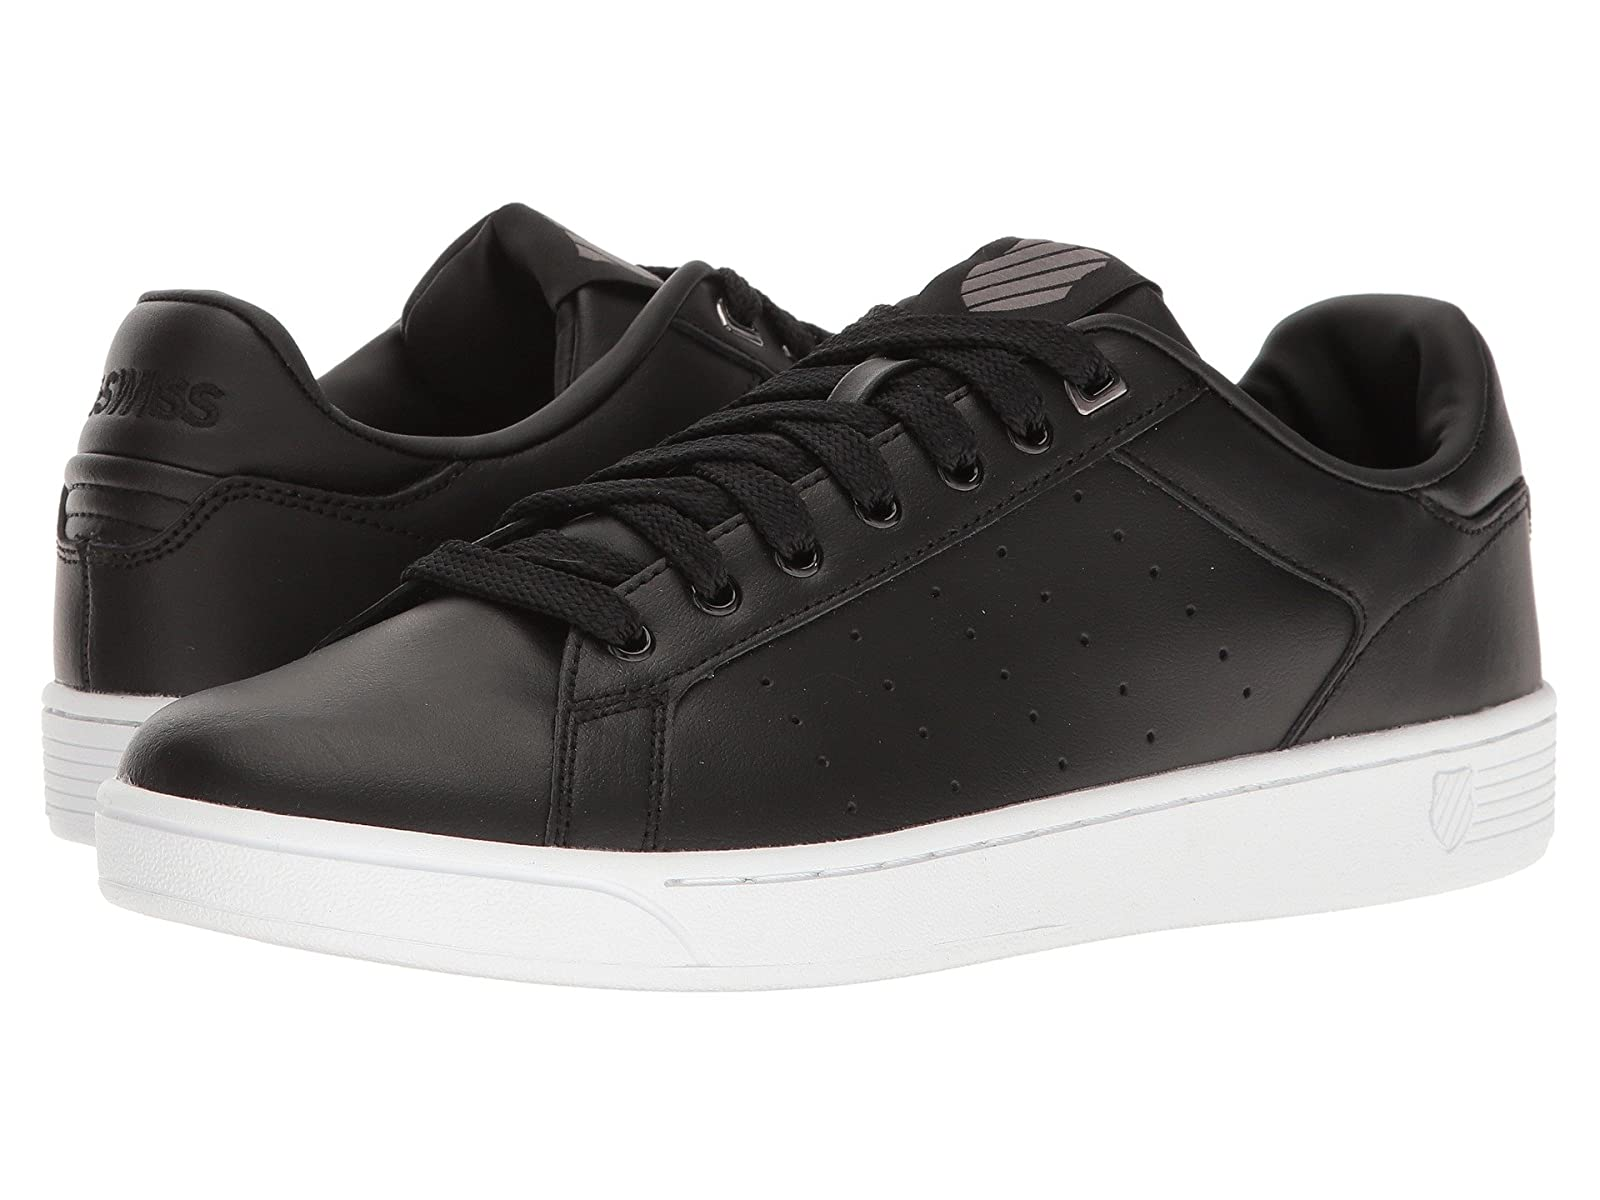 K-Swiss Clean Court CMFCheap and distinctive eye-catching shoes